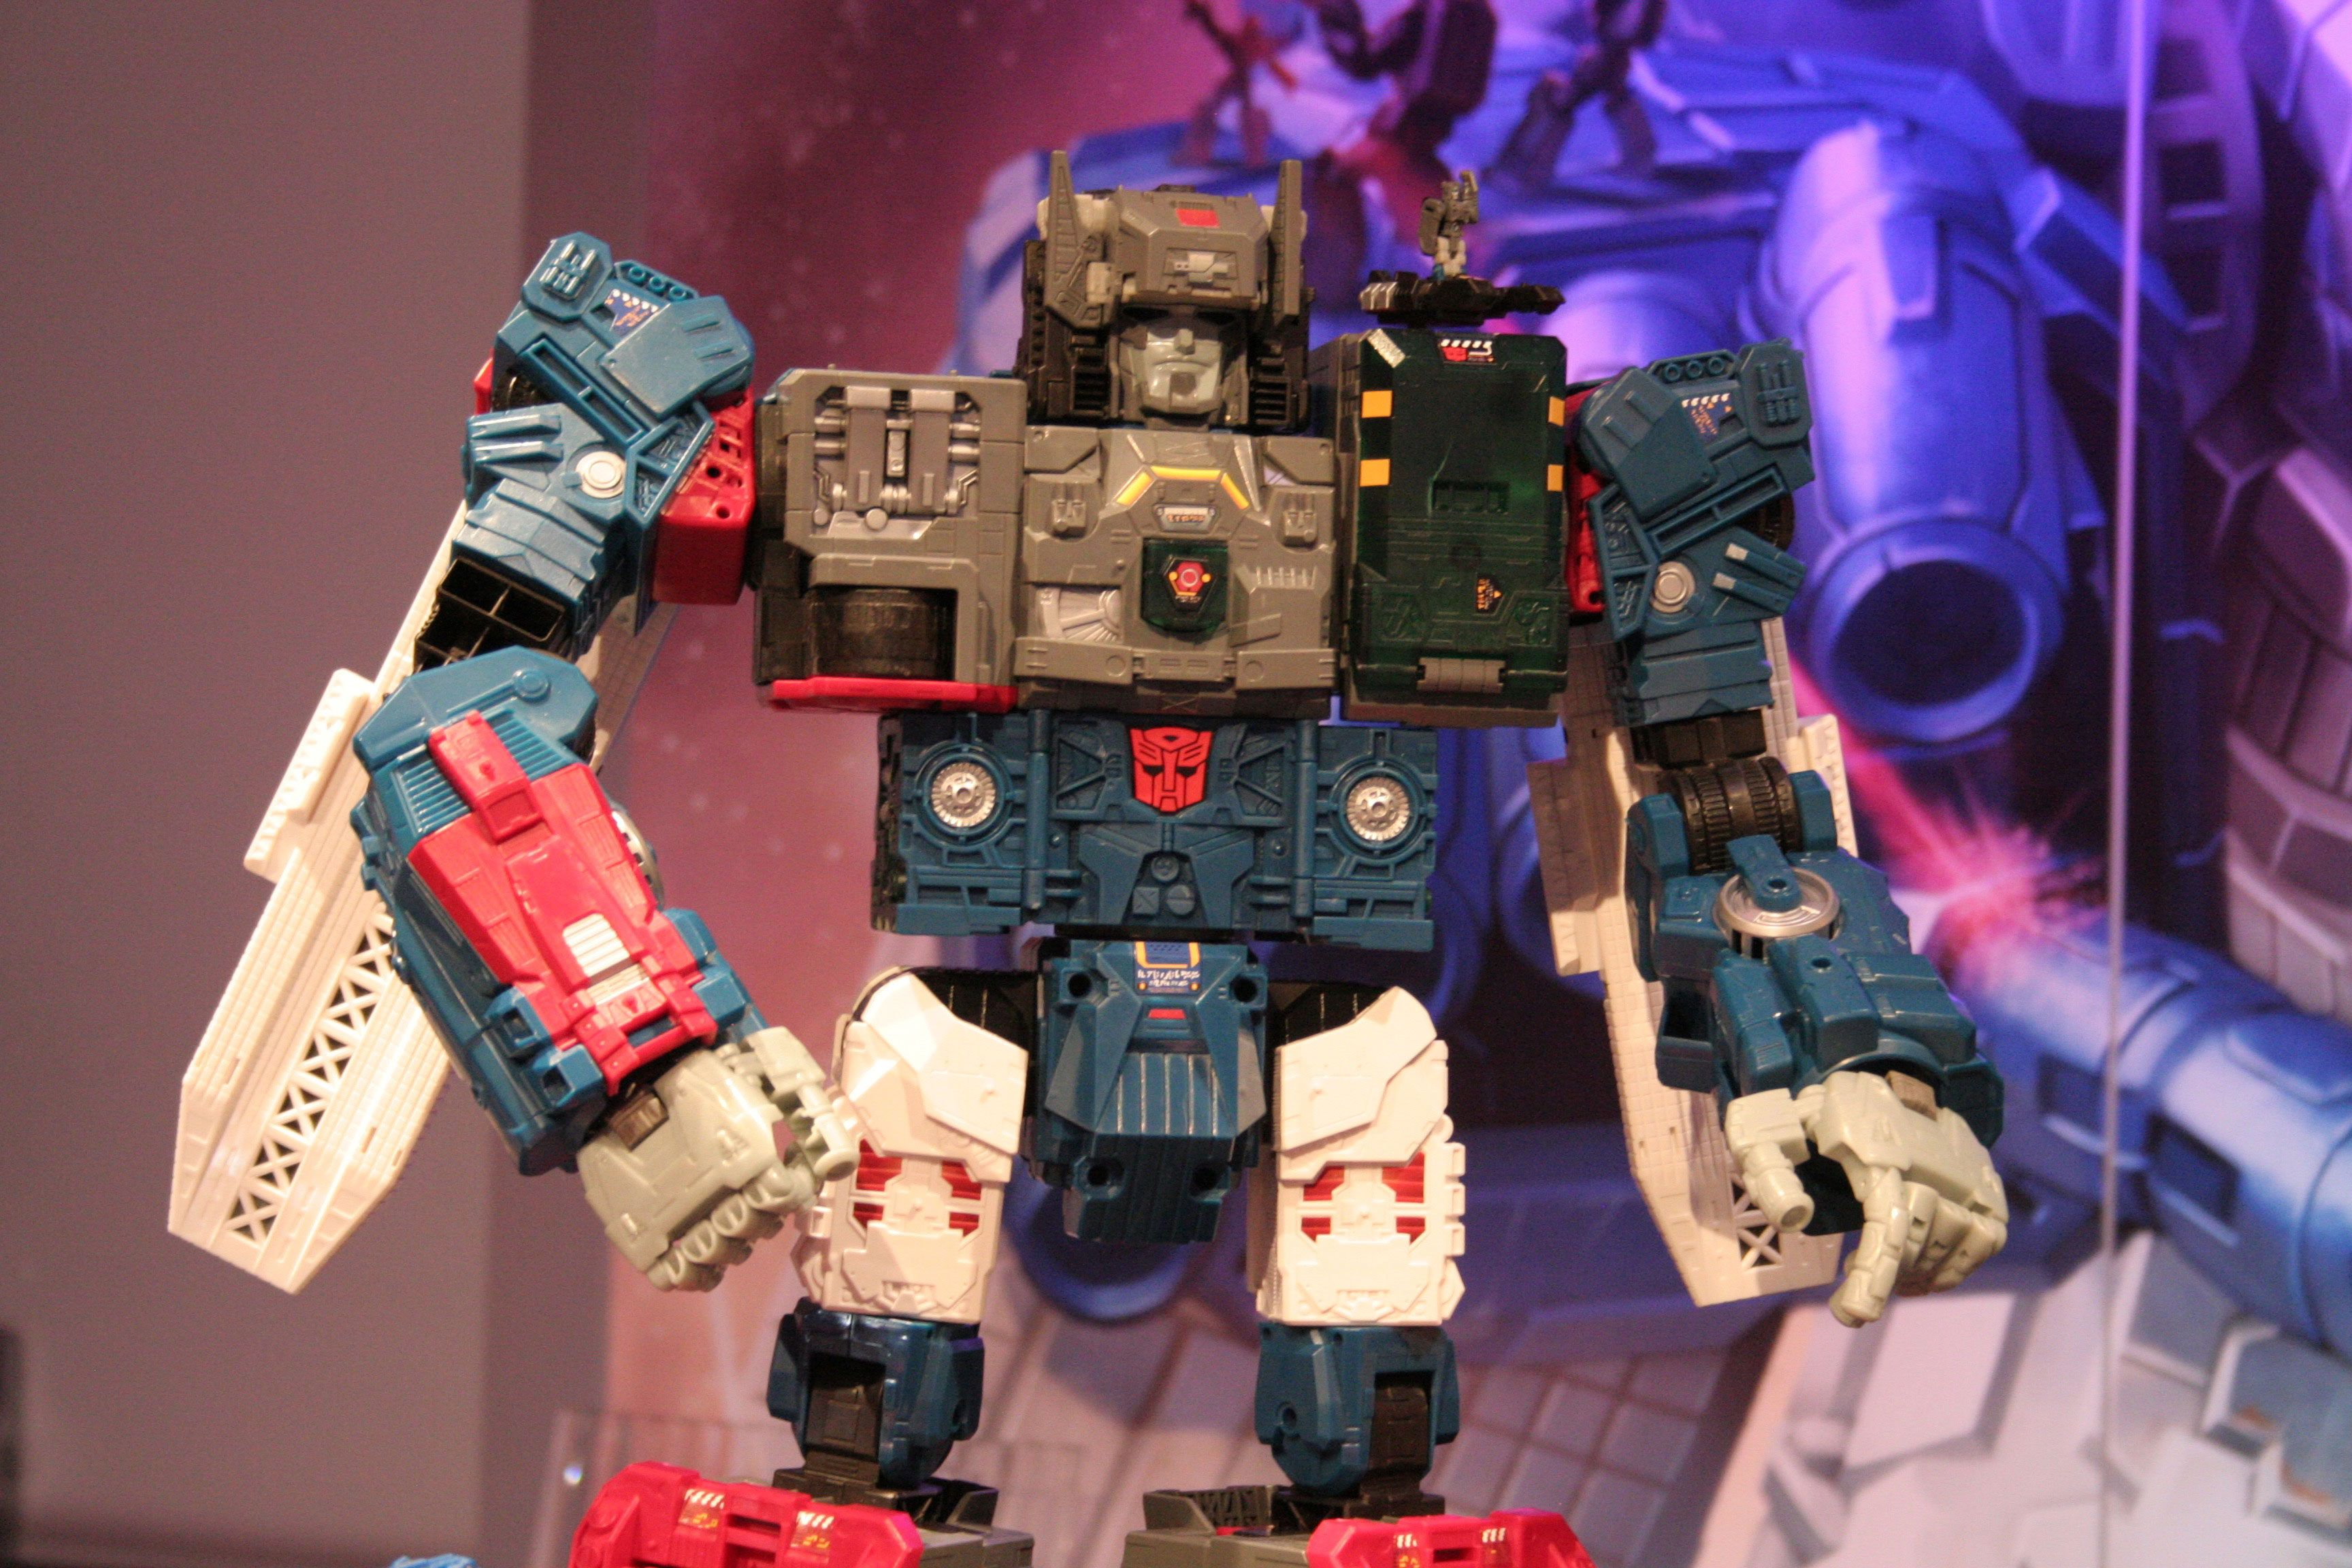 Transformers Moana from Toy Fair 2016